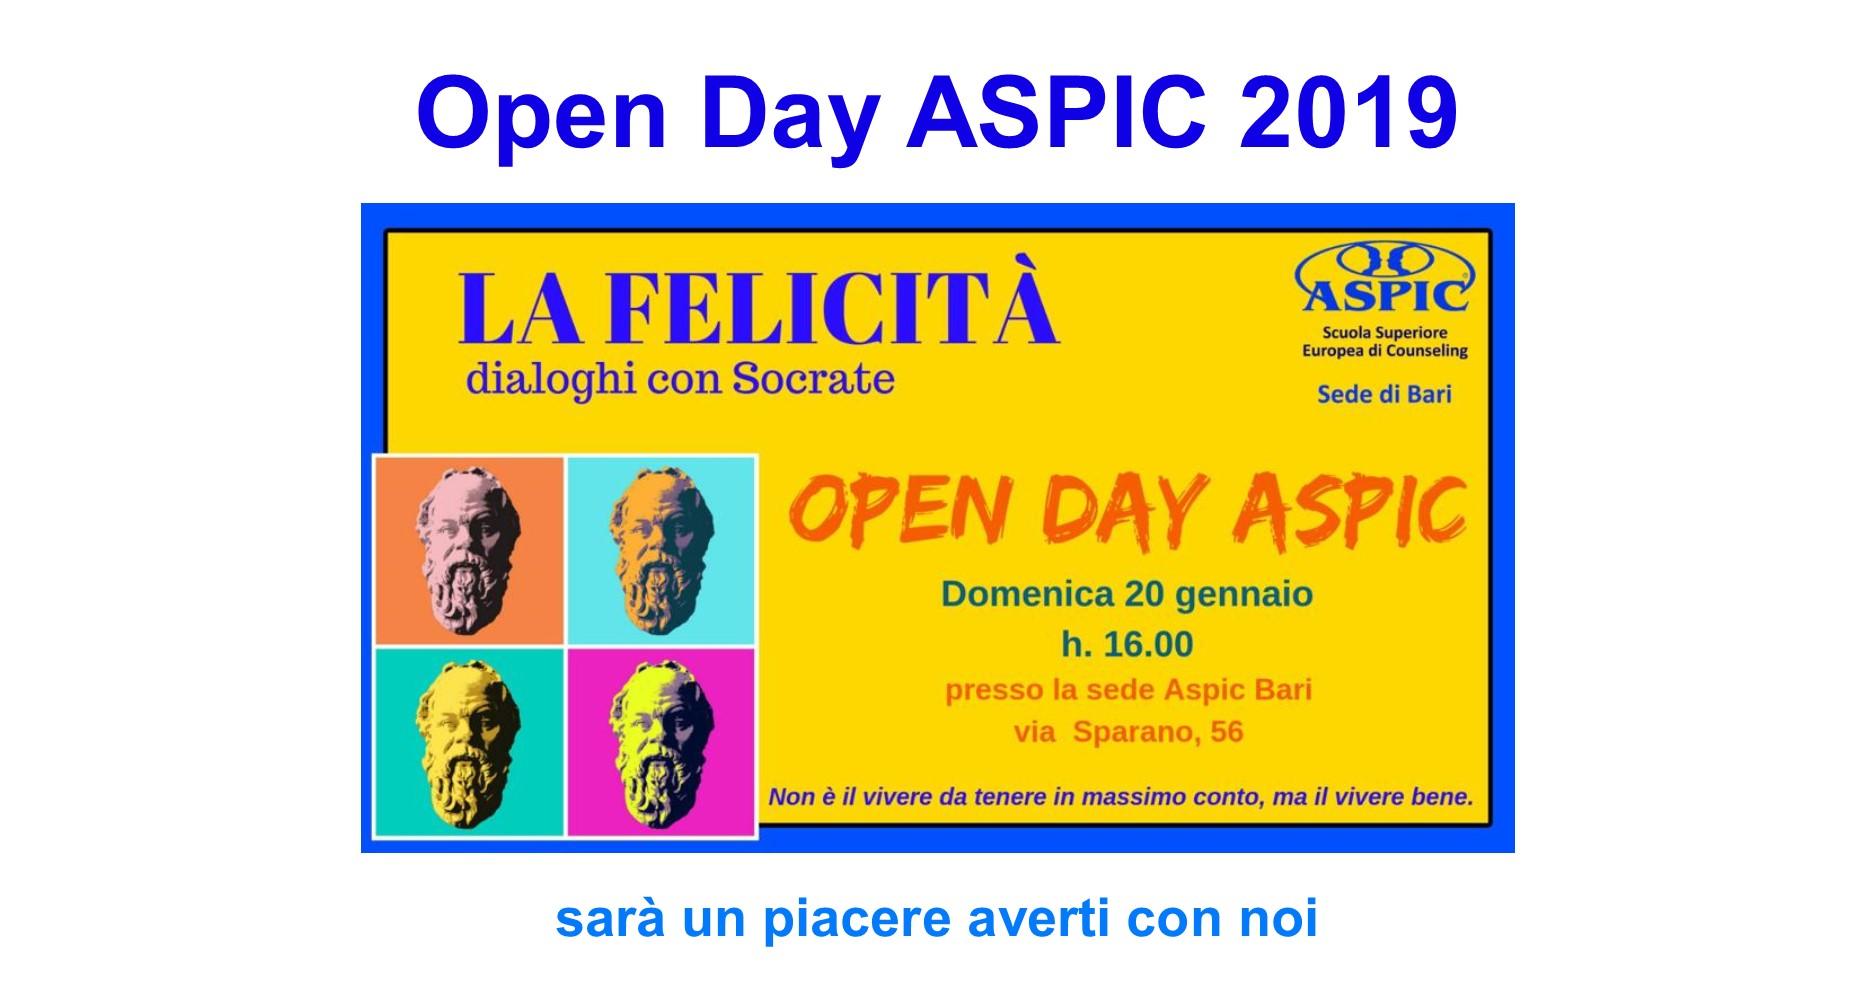 Open Day ASPIC 2019